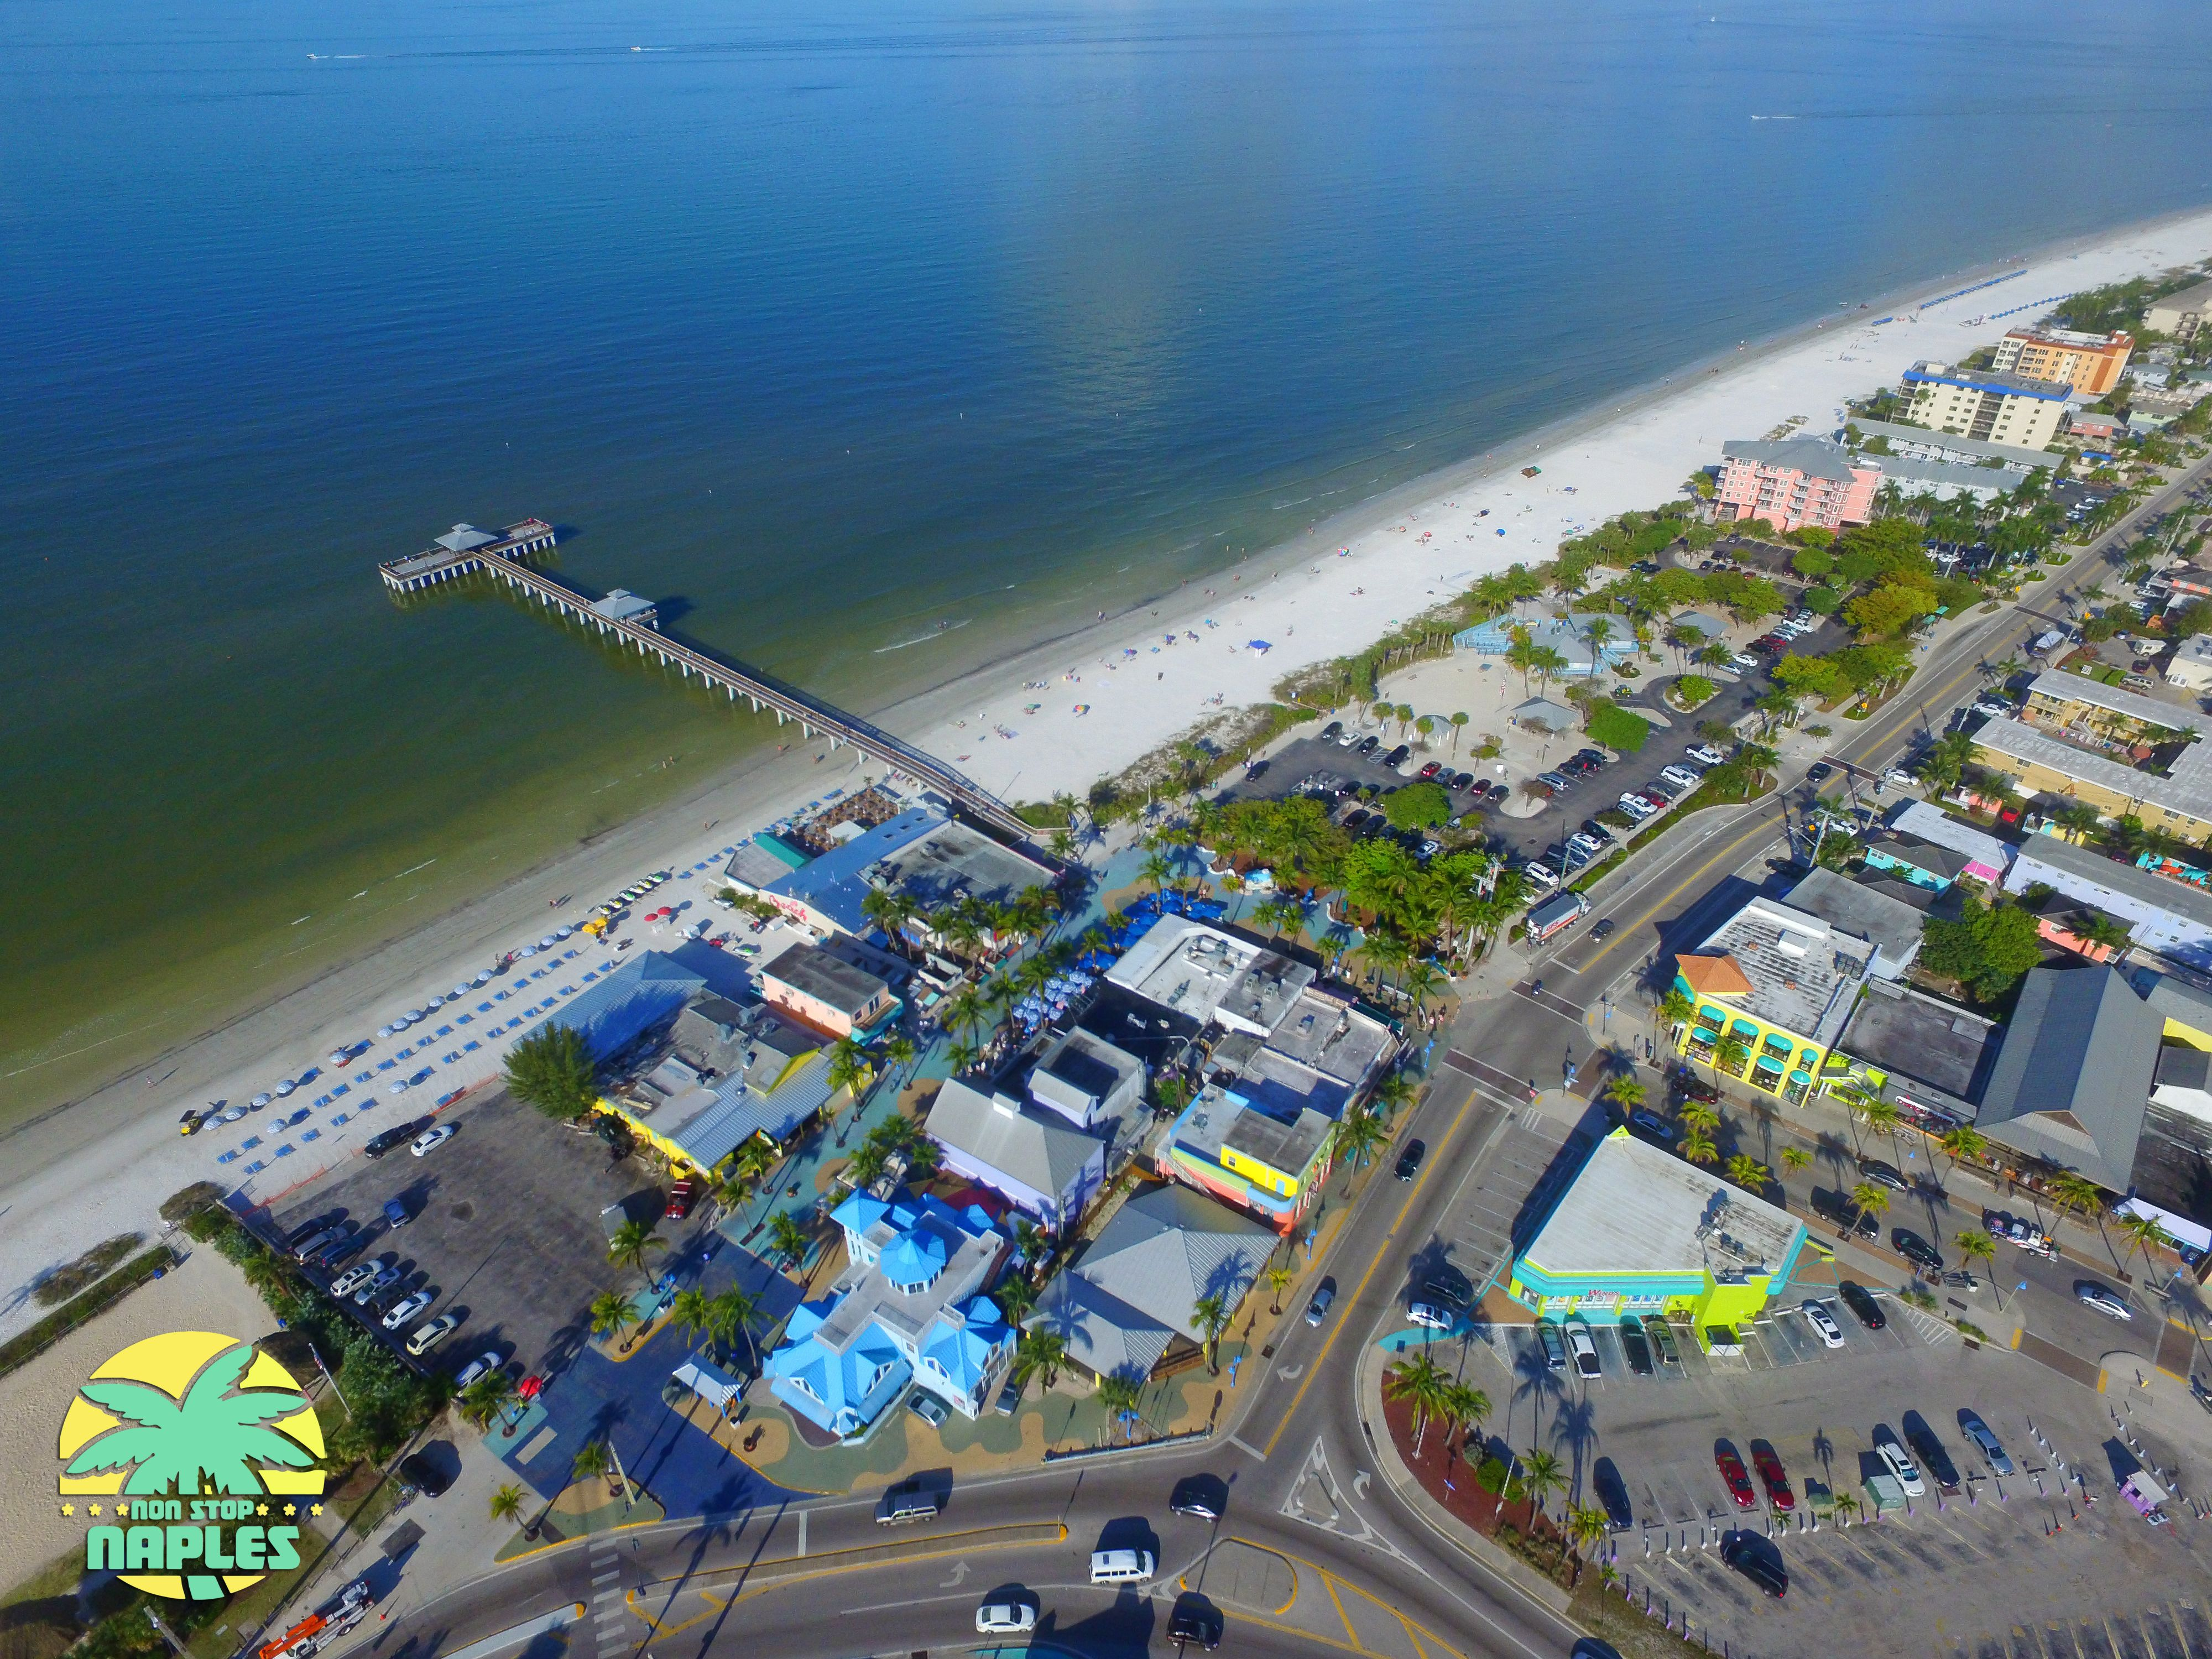 Fort Myers Beach Times Square Street Performers Live Music Restaurants S Definitely Check It Out Nonstopnaples Fortmyersbeach